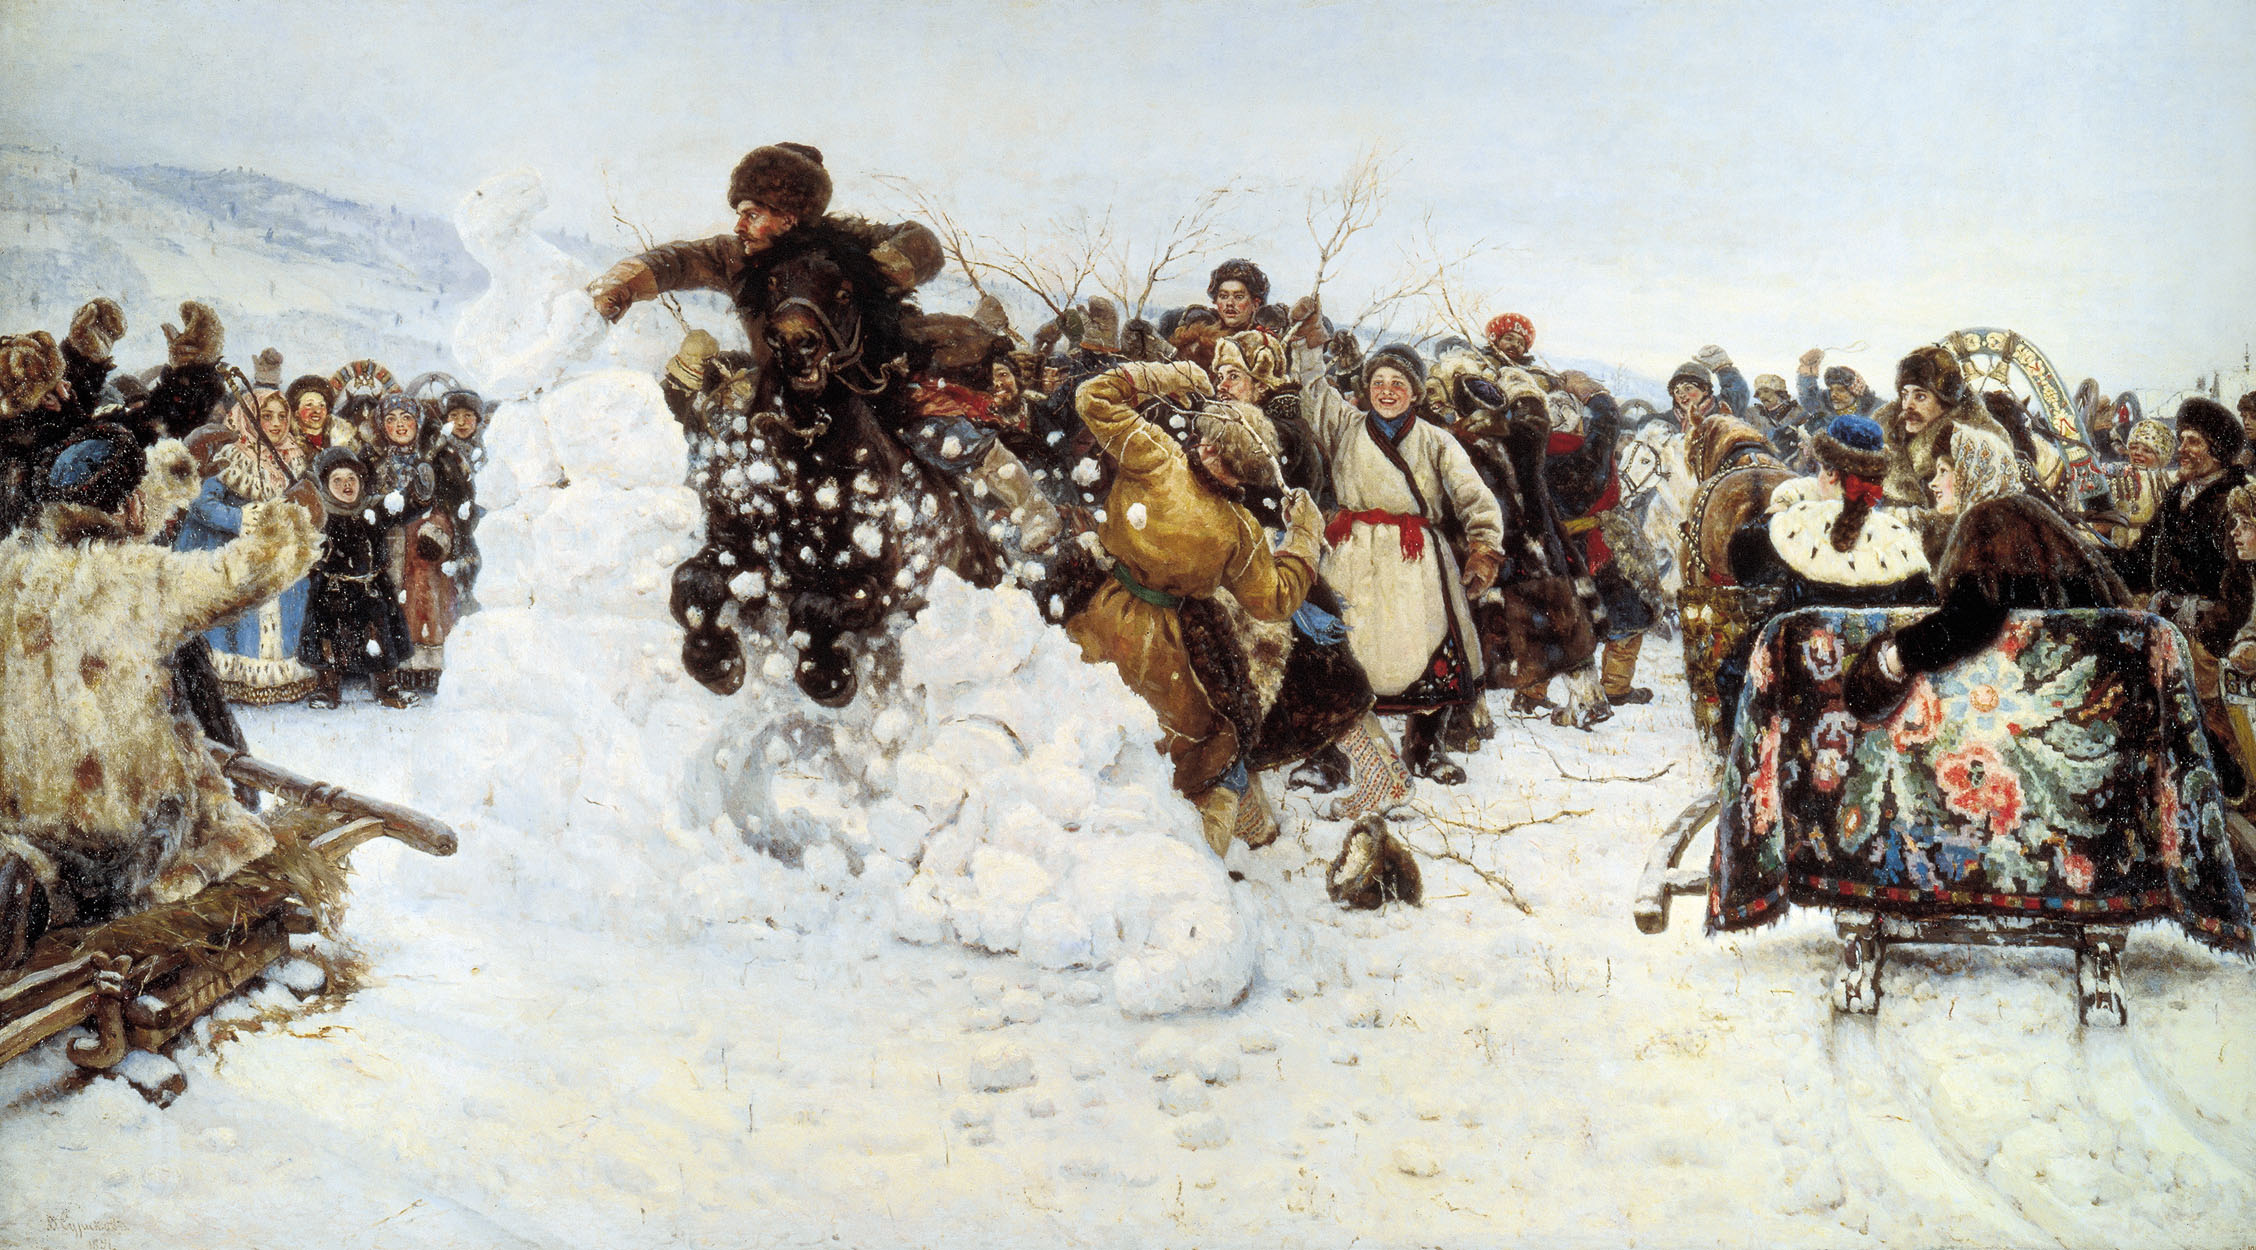 Vasily Ivanovich Surikov (1848 - 1916)  Storm of Snow Fortress  Oil on canvas, 1891   156 x 282 cm  The Russian Museum, St. Petersburg, Russia